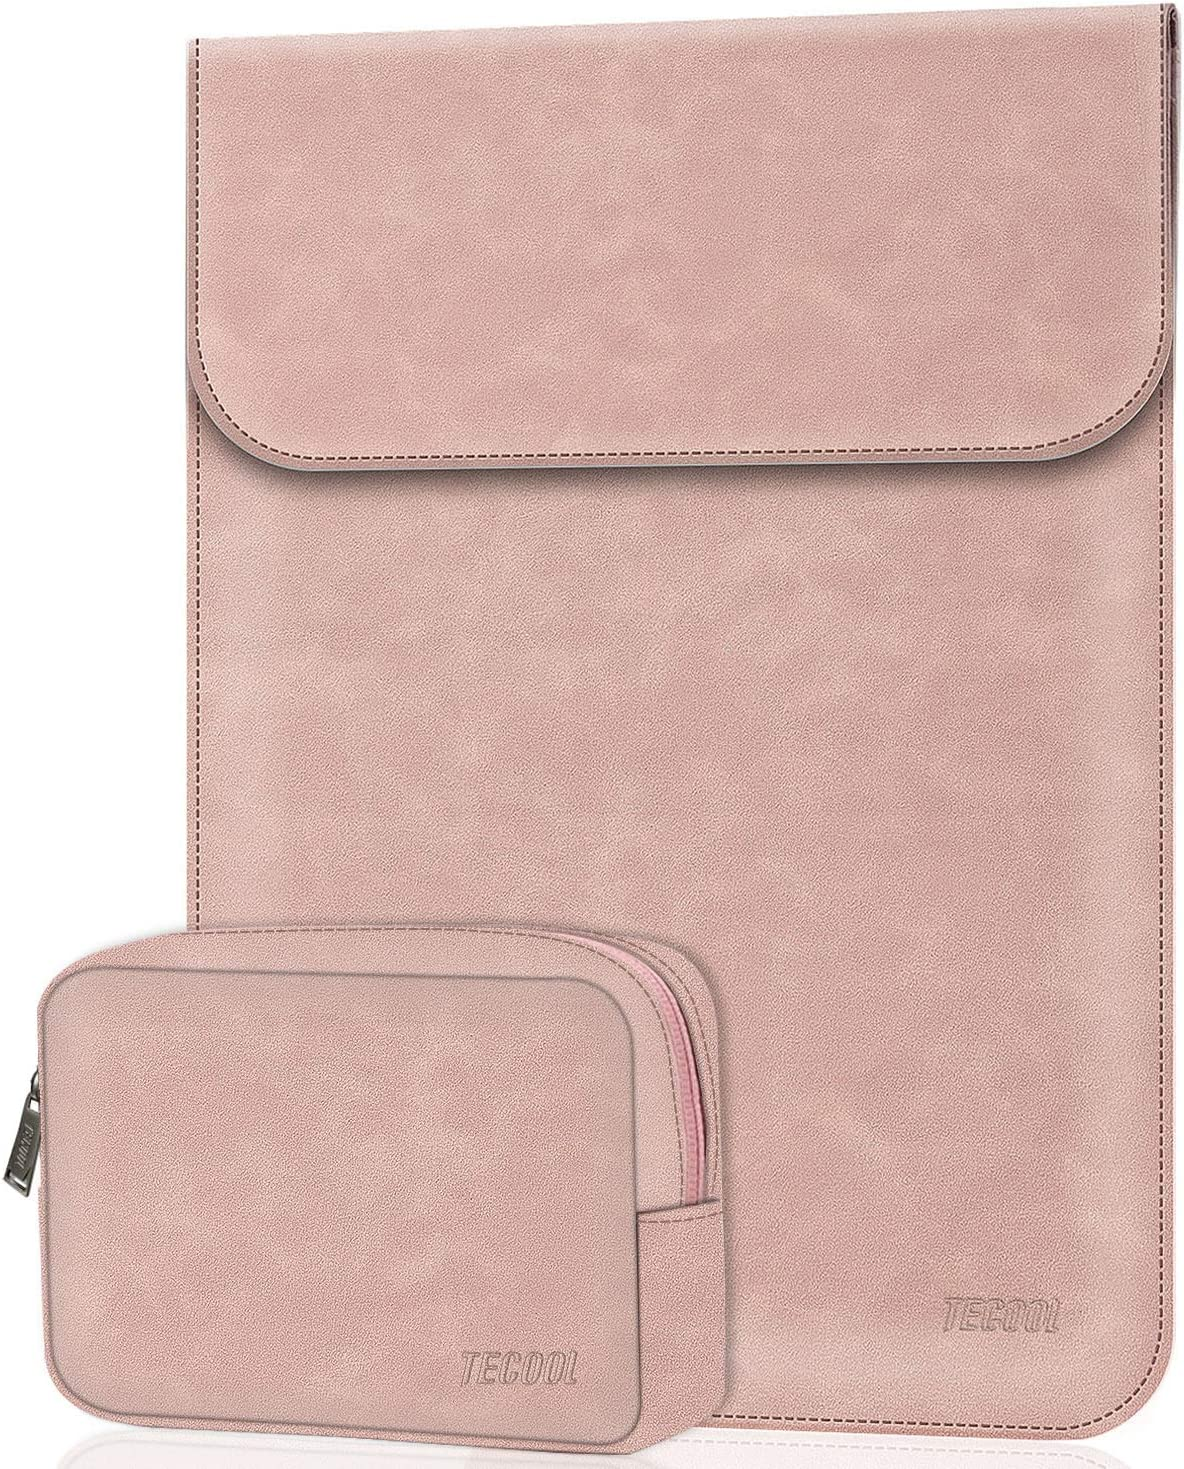 "TECOOL Laptop Sleeve Compatible with 13.3"" HP Envy x360 13, MacBook Air/Pro 13, Dell Inspiron 13 2-in-1, ASUS Zenbook 13, 13.5"" Surface Laptop 3/2, Lenovo Yoga C740 14"", Synthetic Leather Light Pink"